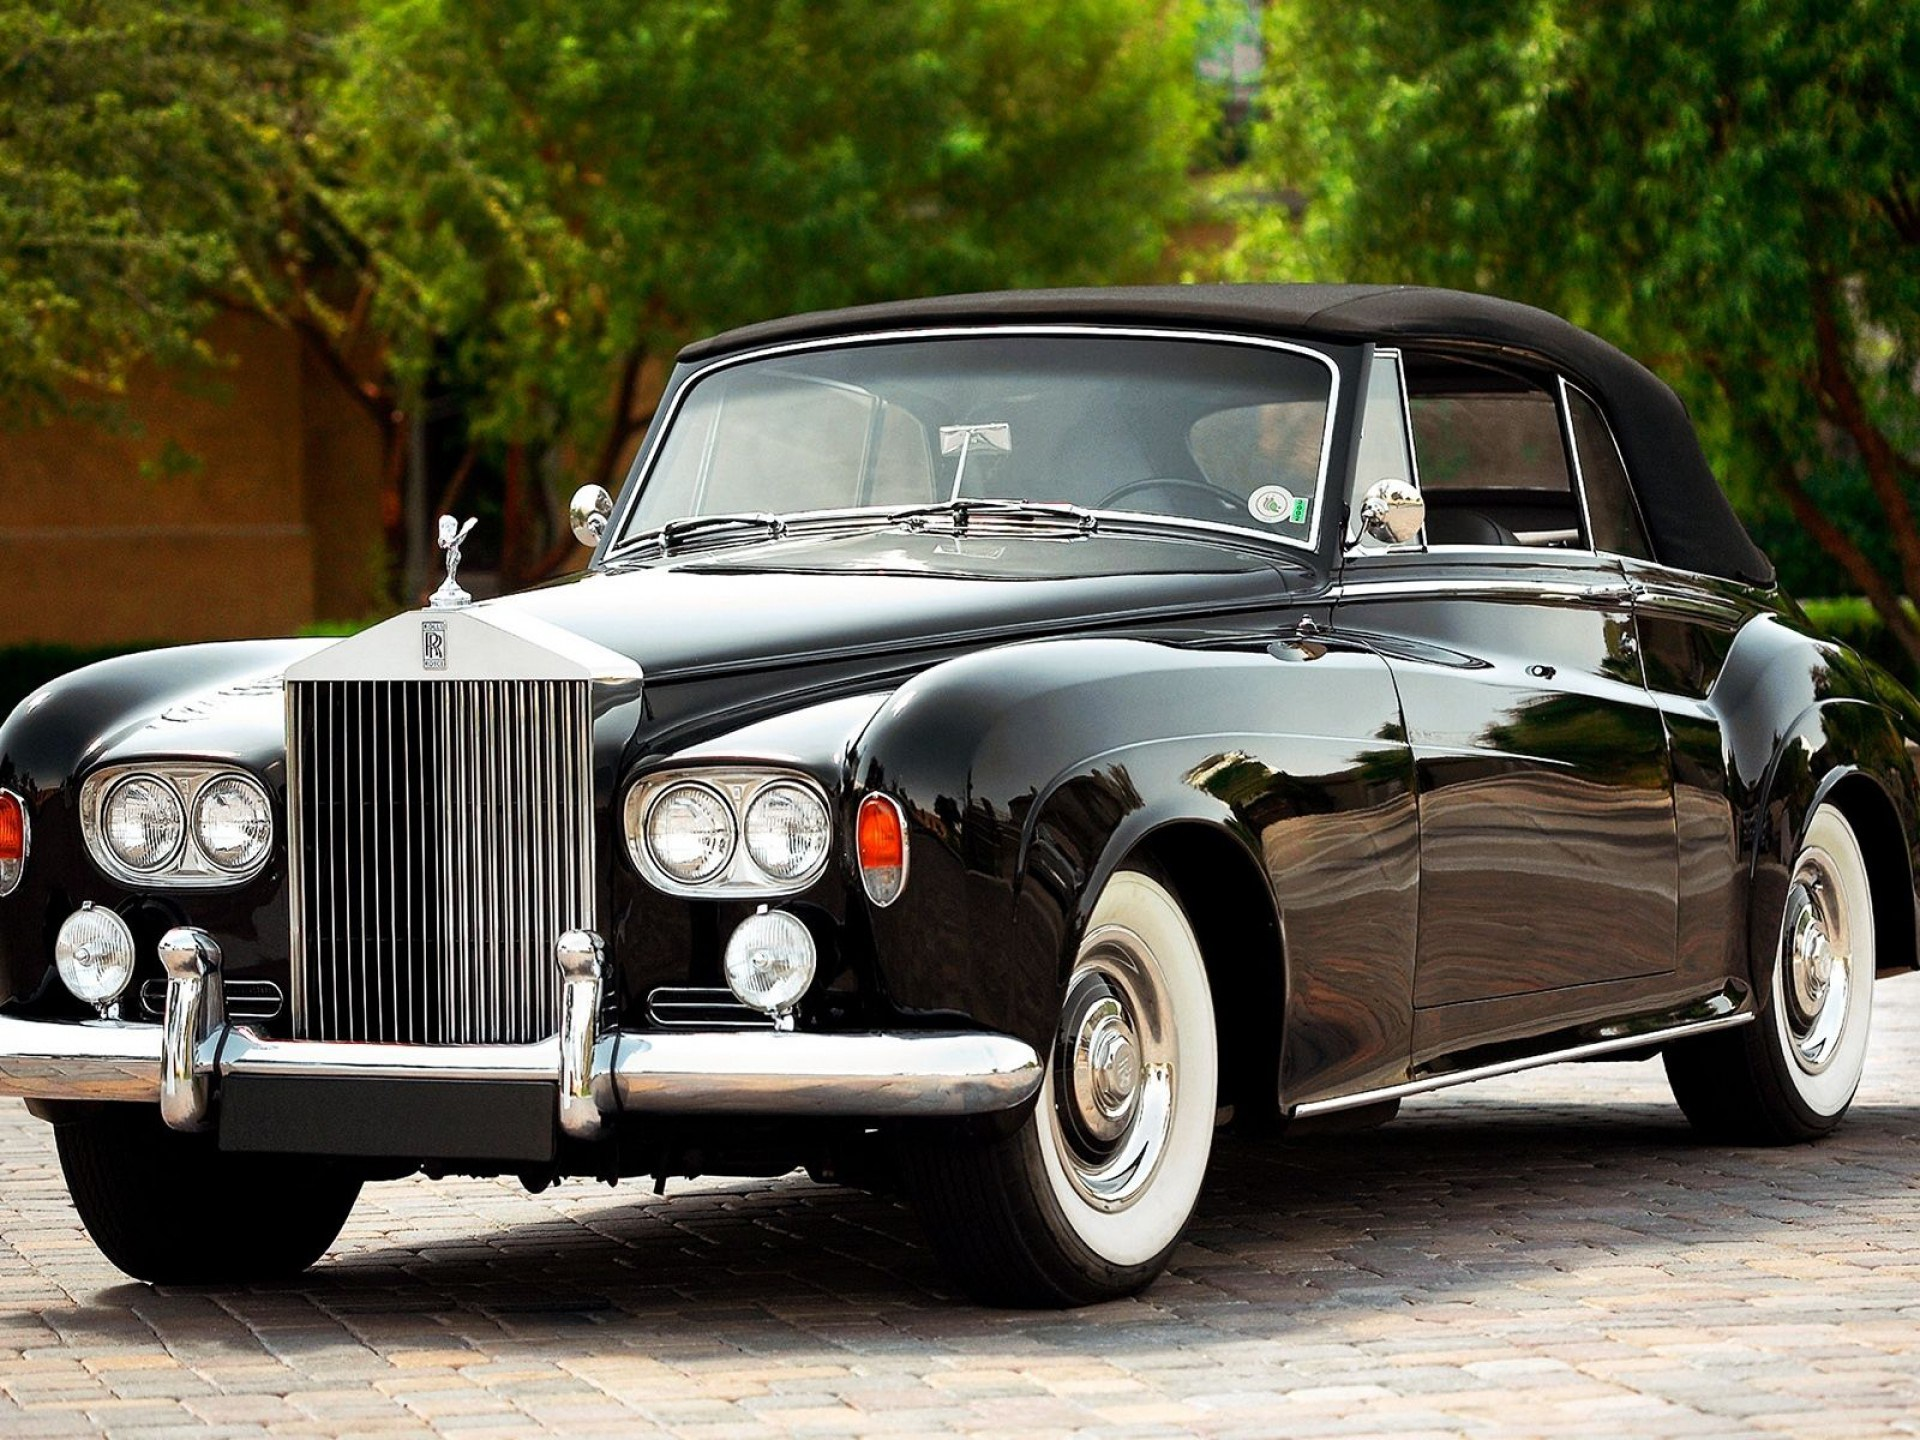 Rolls royce 25 photo - 4